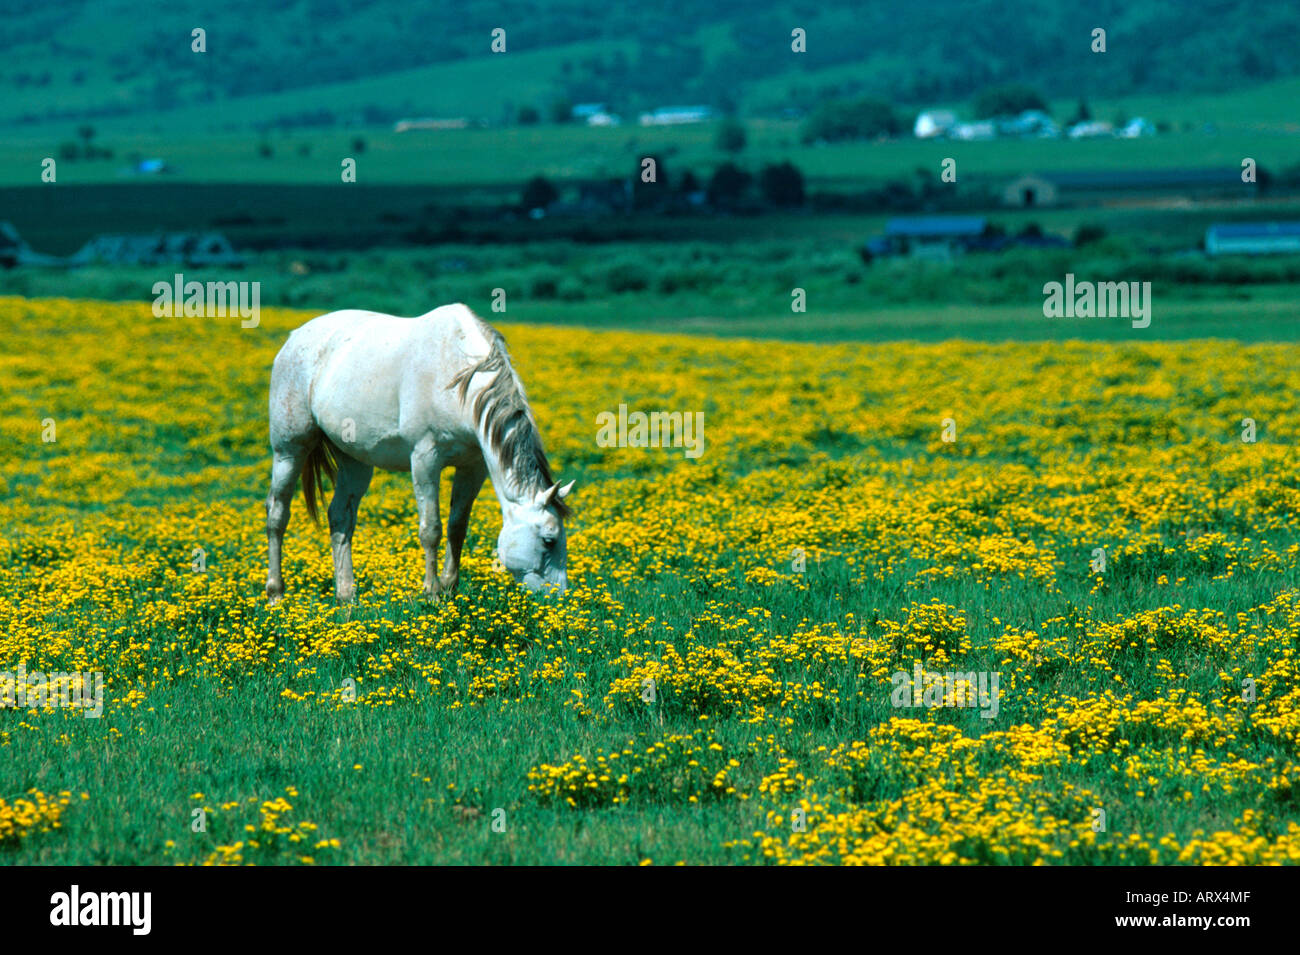 Flowers steamboat springs colorado stock photos flowers white horse in field of yellow flowers near steamboat springs colorado usa stock image dhlflorist Choice Image